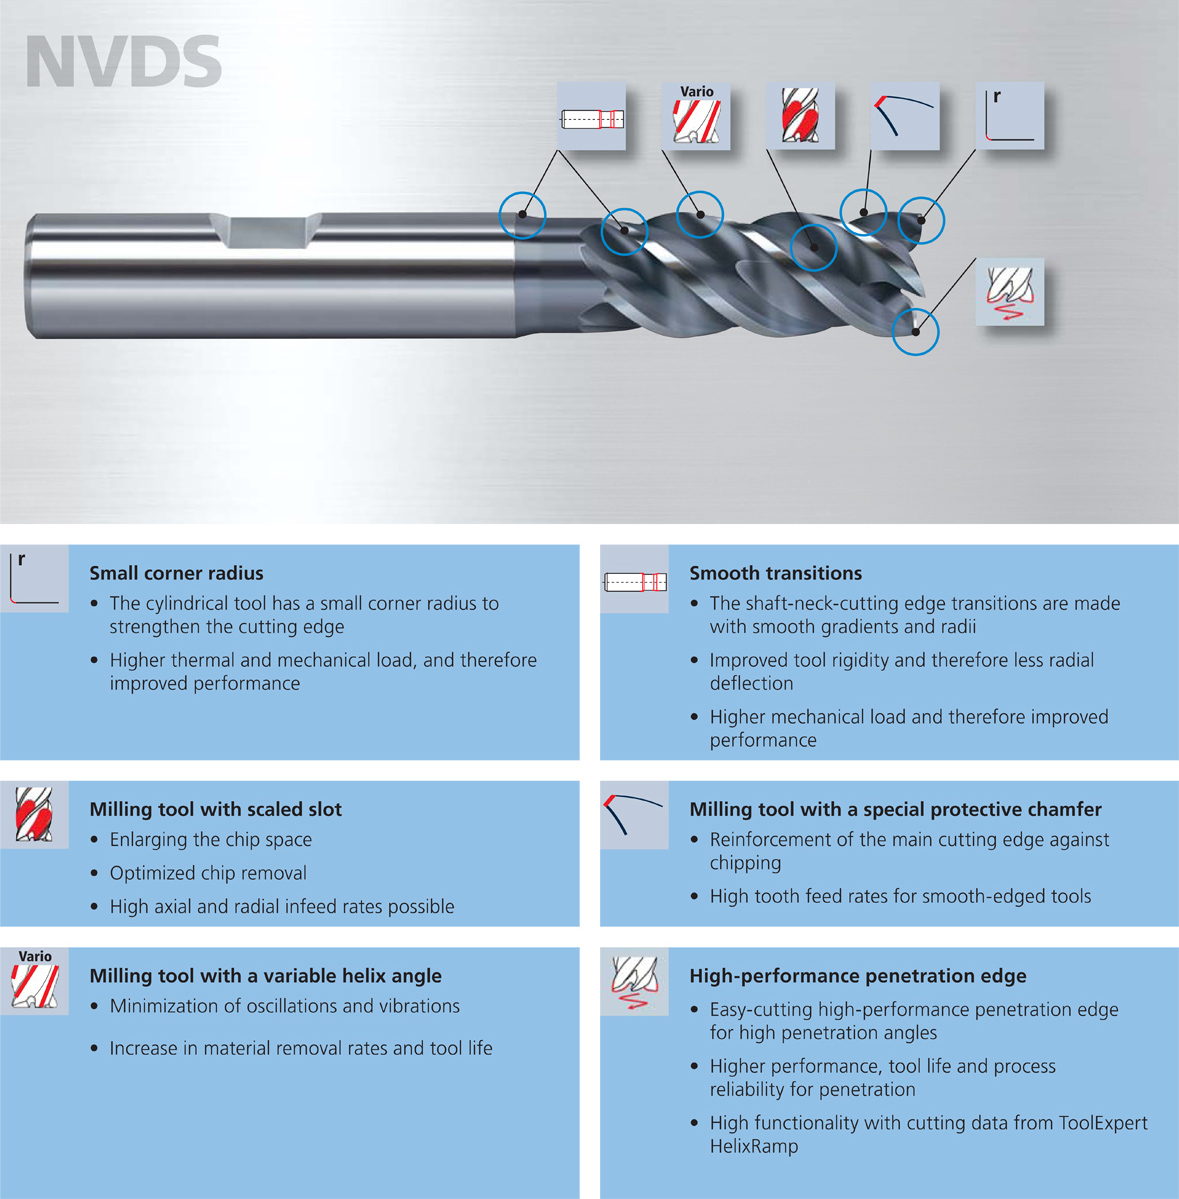 The tool technologies of NVDS tools